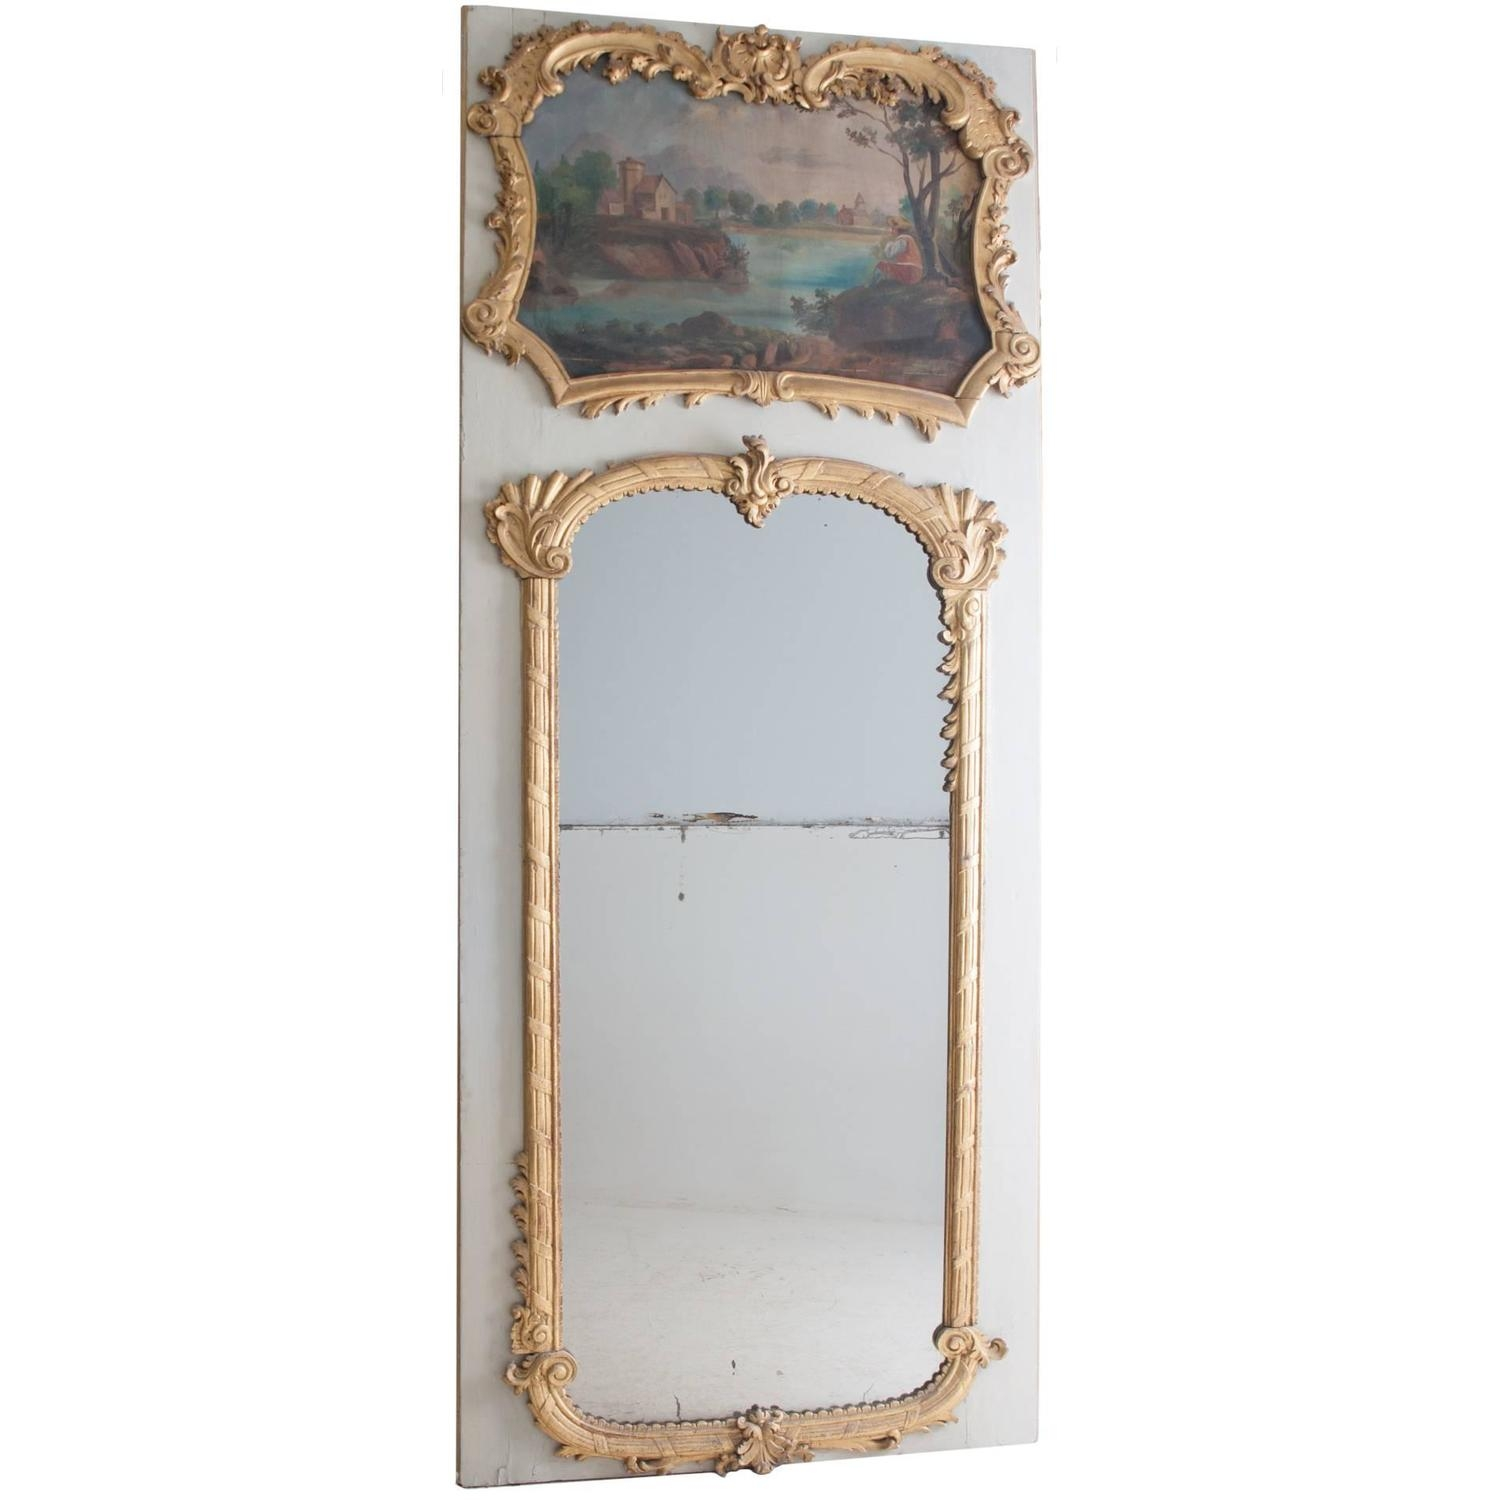 Antique Vintage Floor Mirrors And Full Length Mirrors For Sale With Regard To Vintage French Mirrors (View 6 of 15)